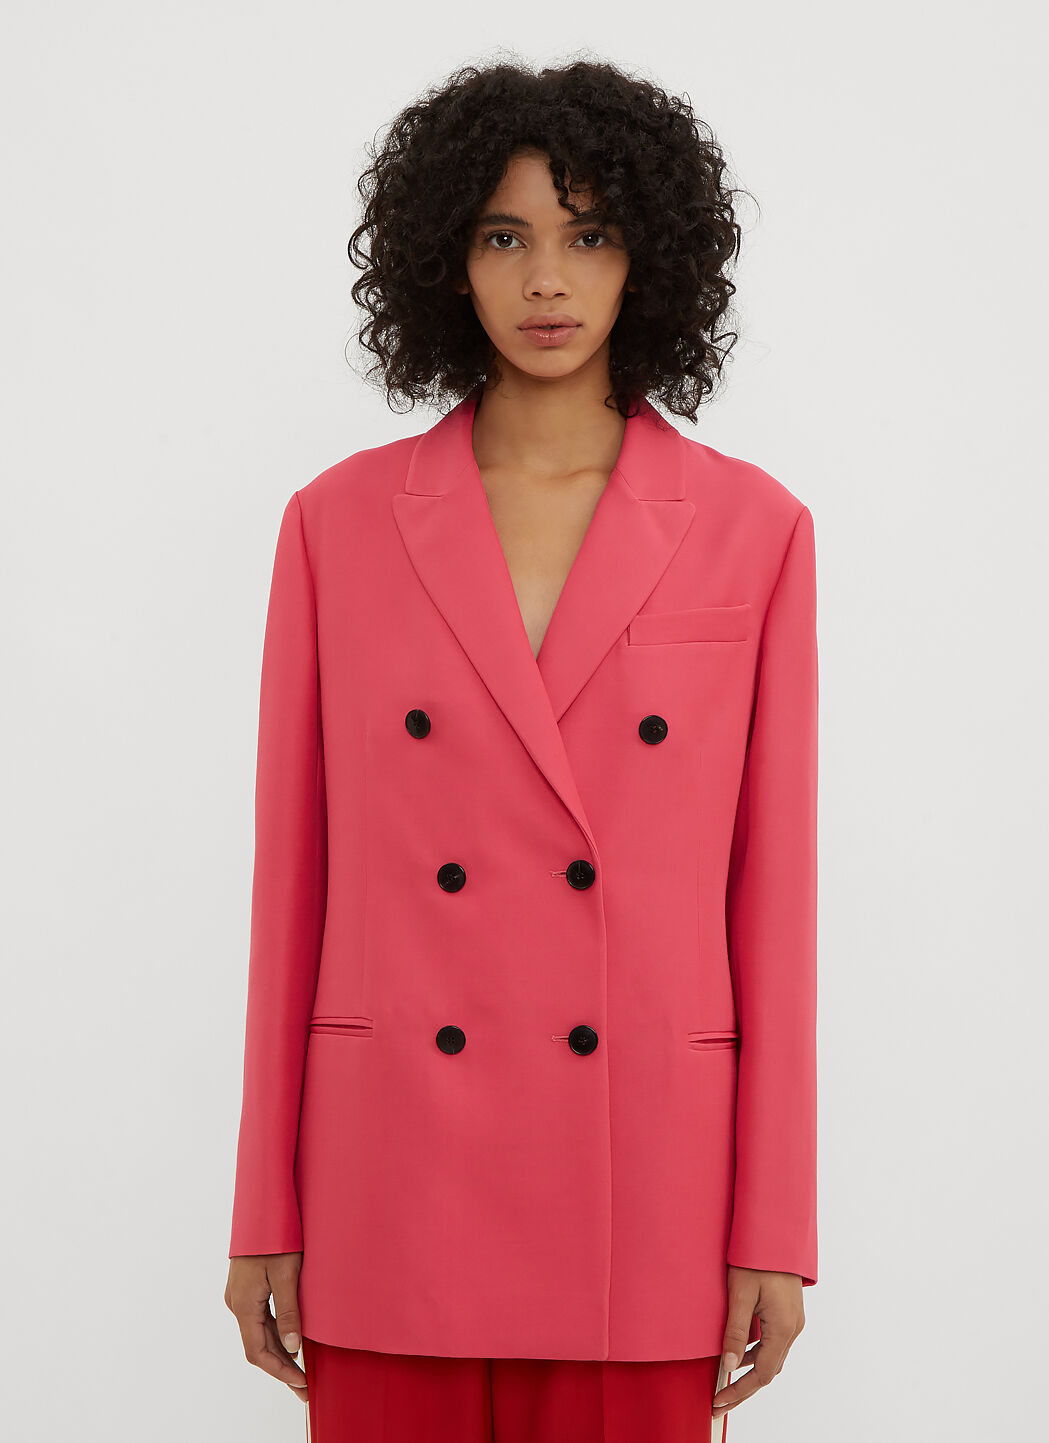 VALENTINO Double Breasted Blazer in Pink